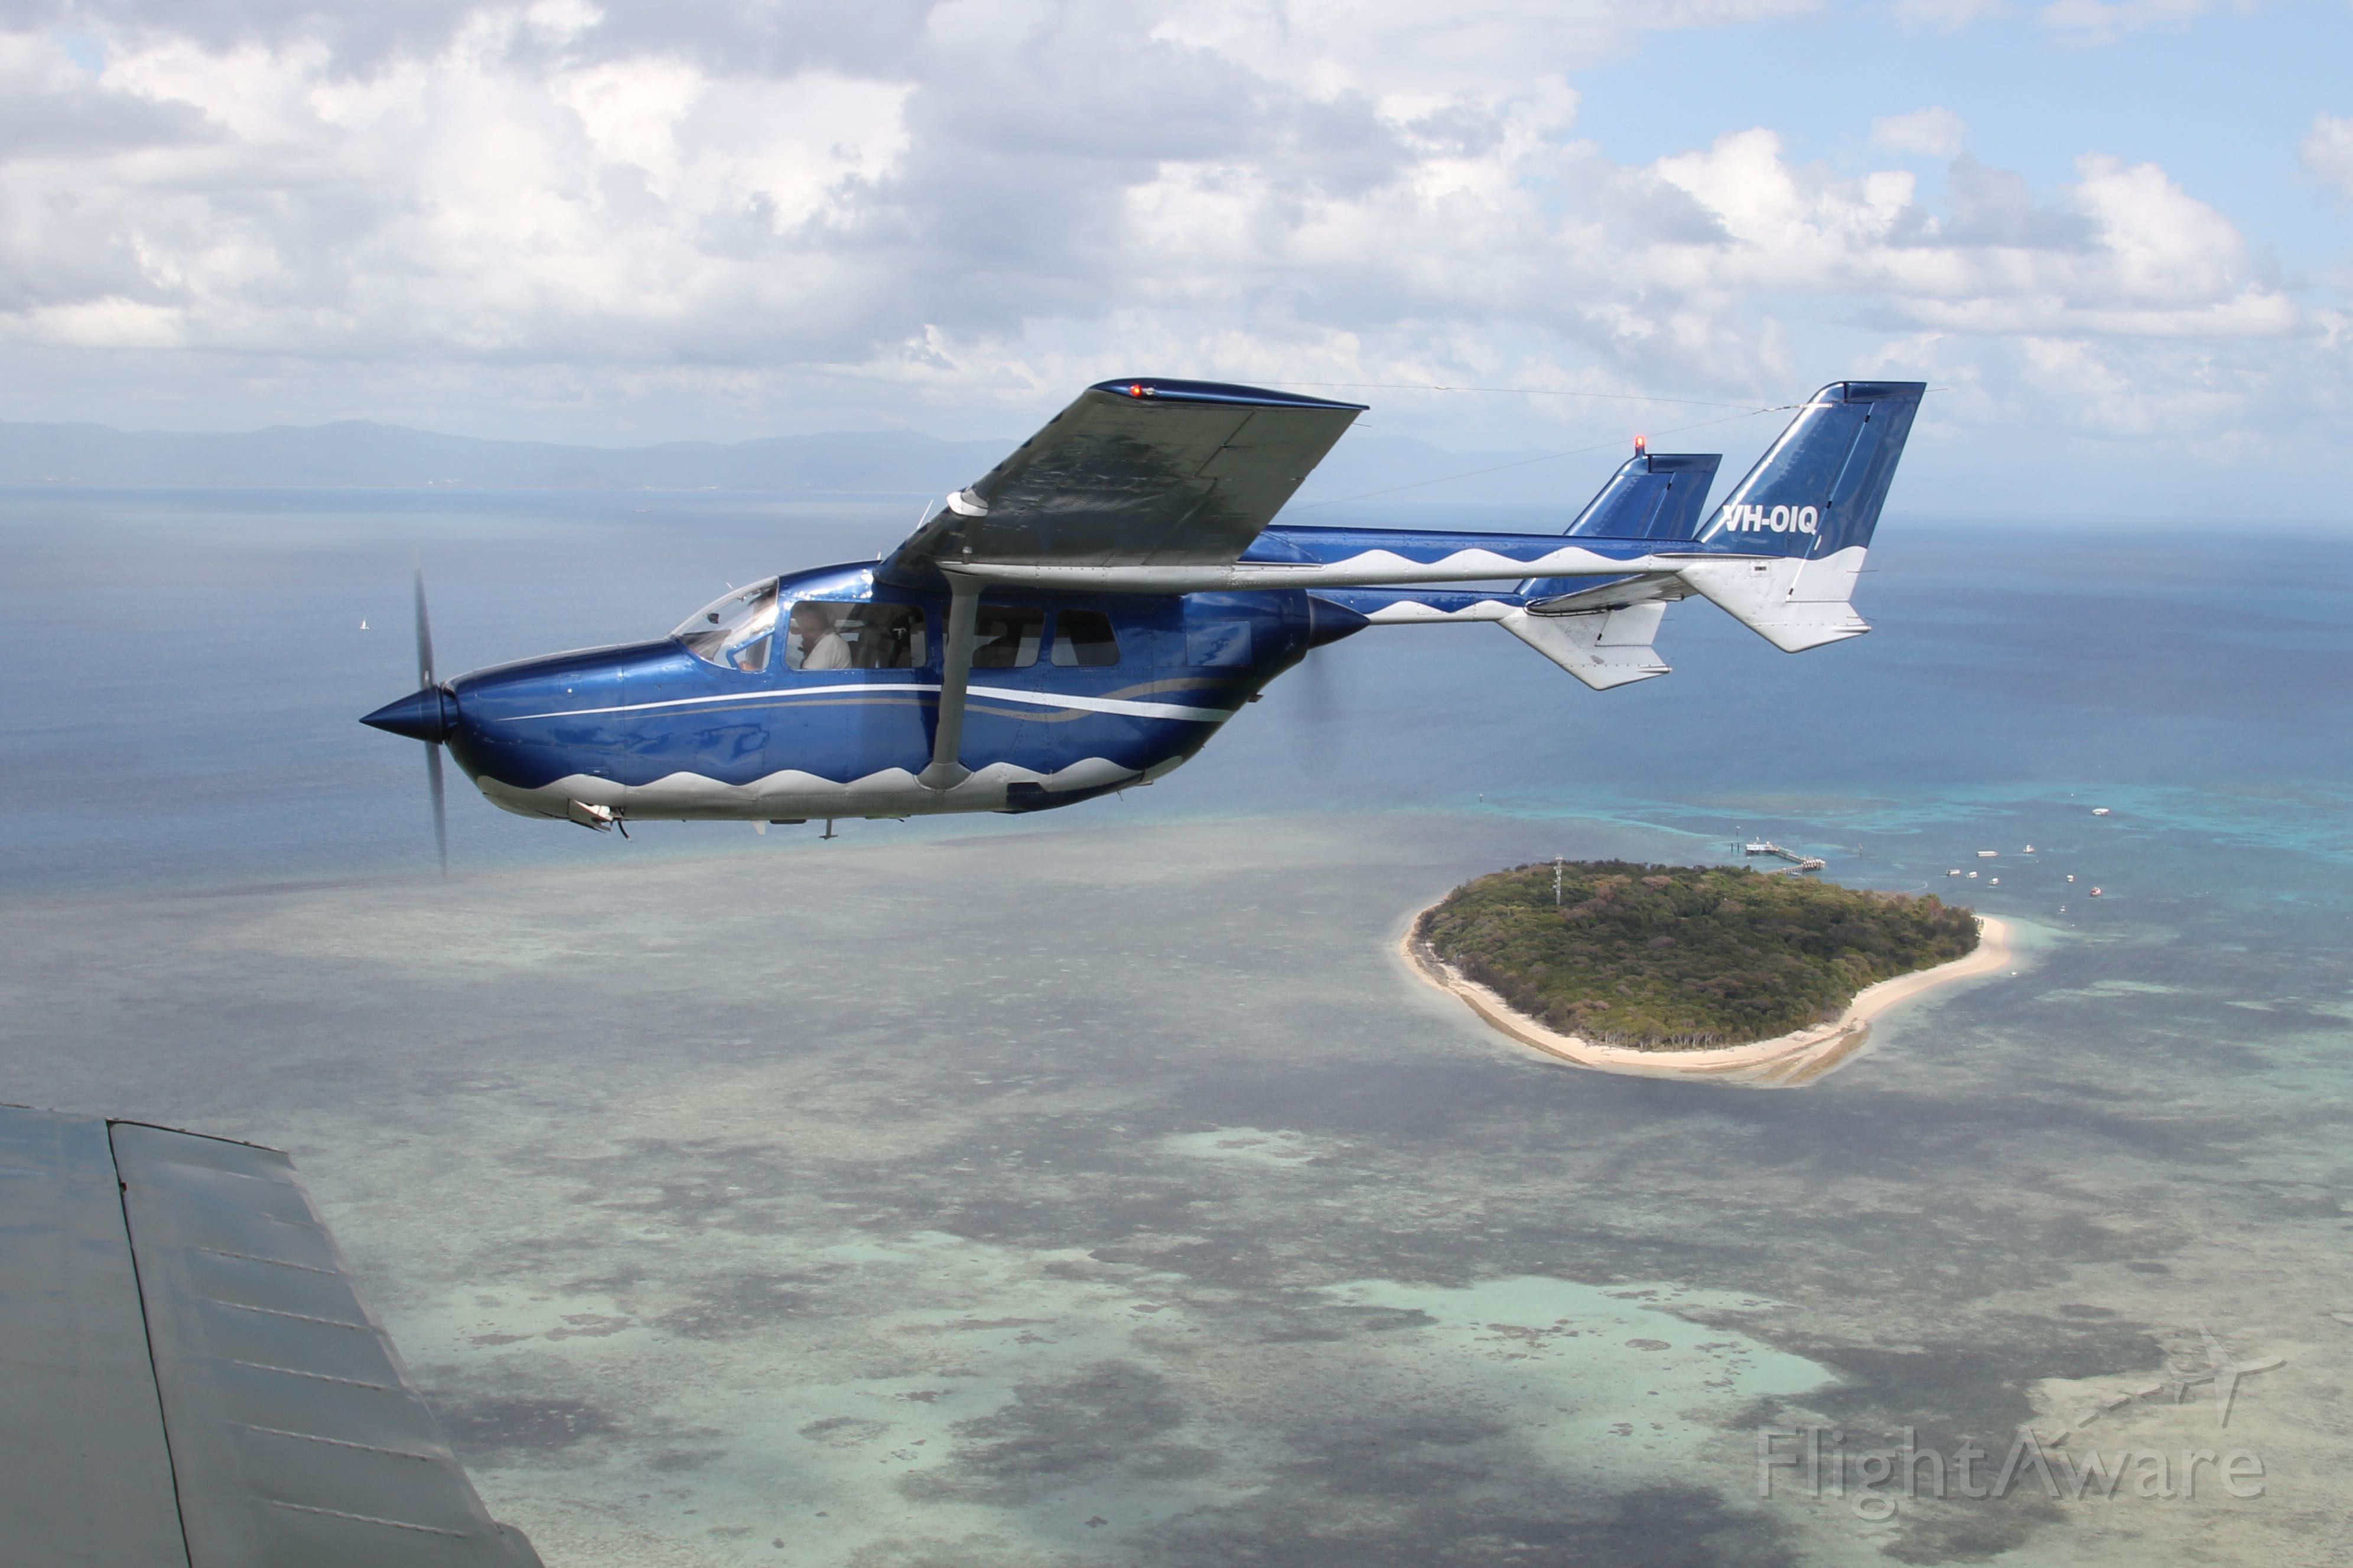 Cessna Super Skymaster (VH-OIQ) - Reef scenic flight over Green Island, Great Barrier Reef with OutbackOvernight.com